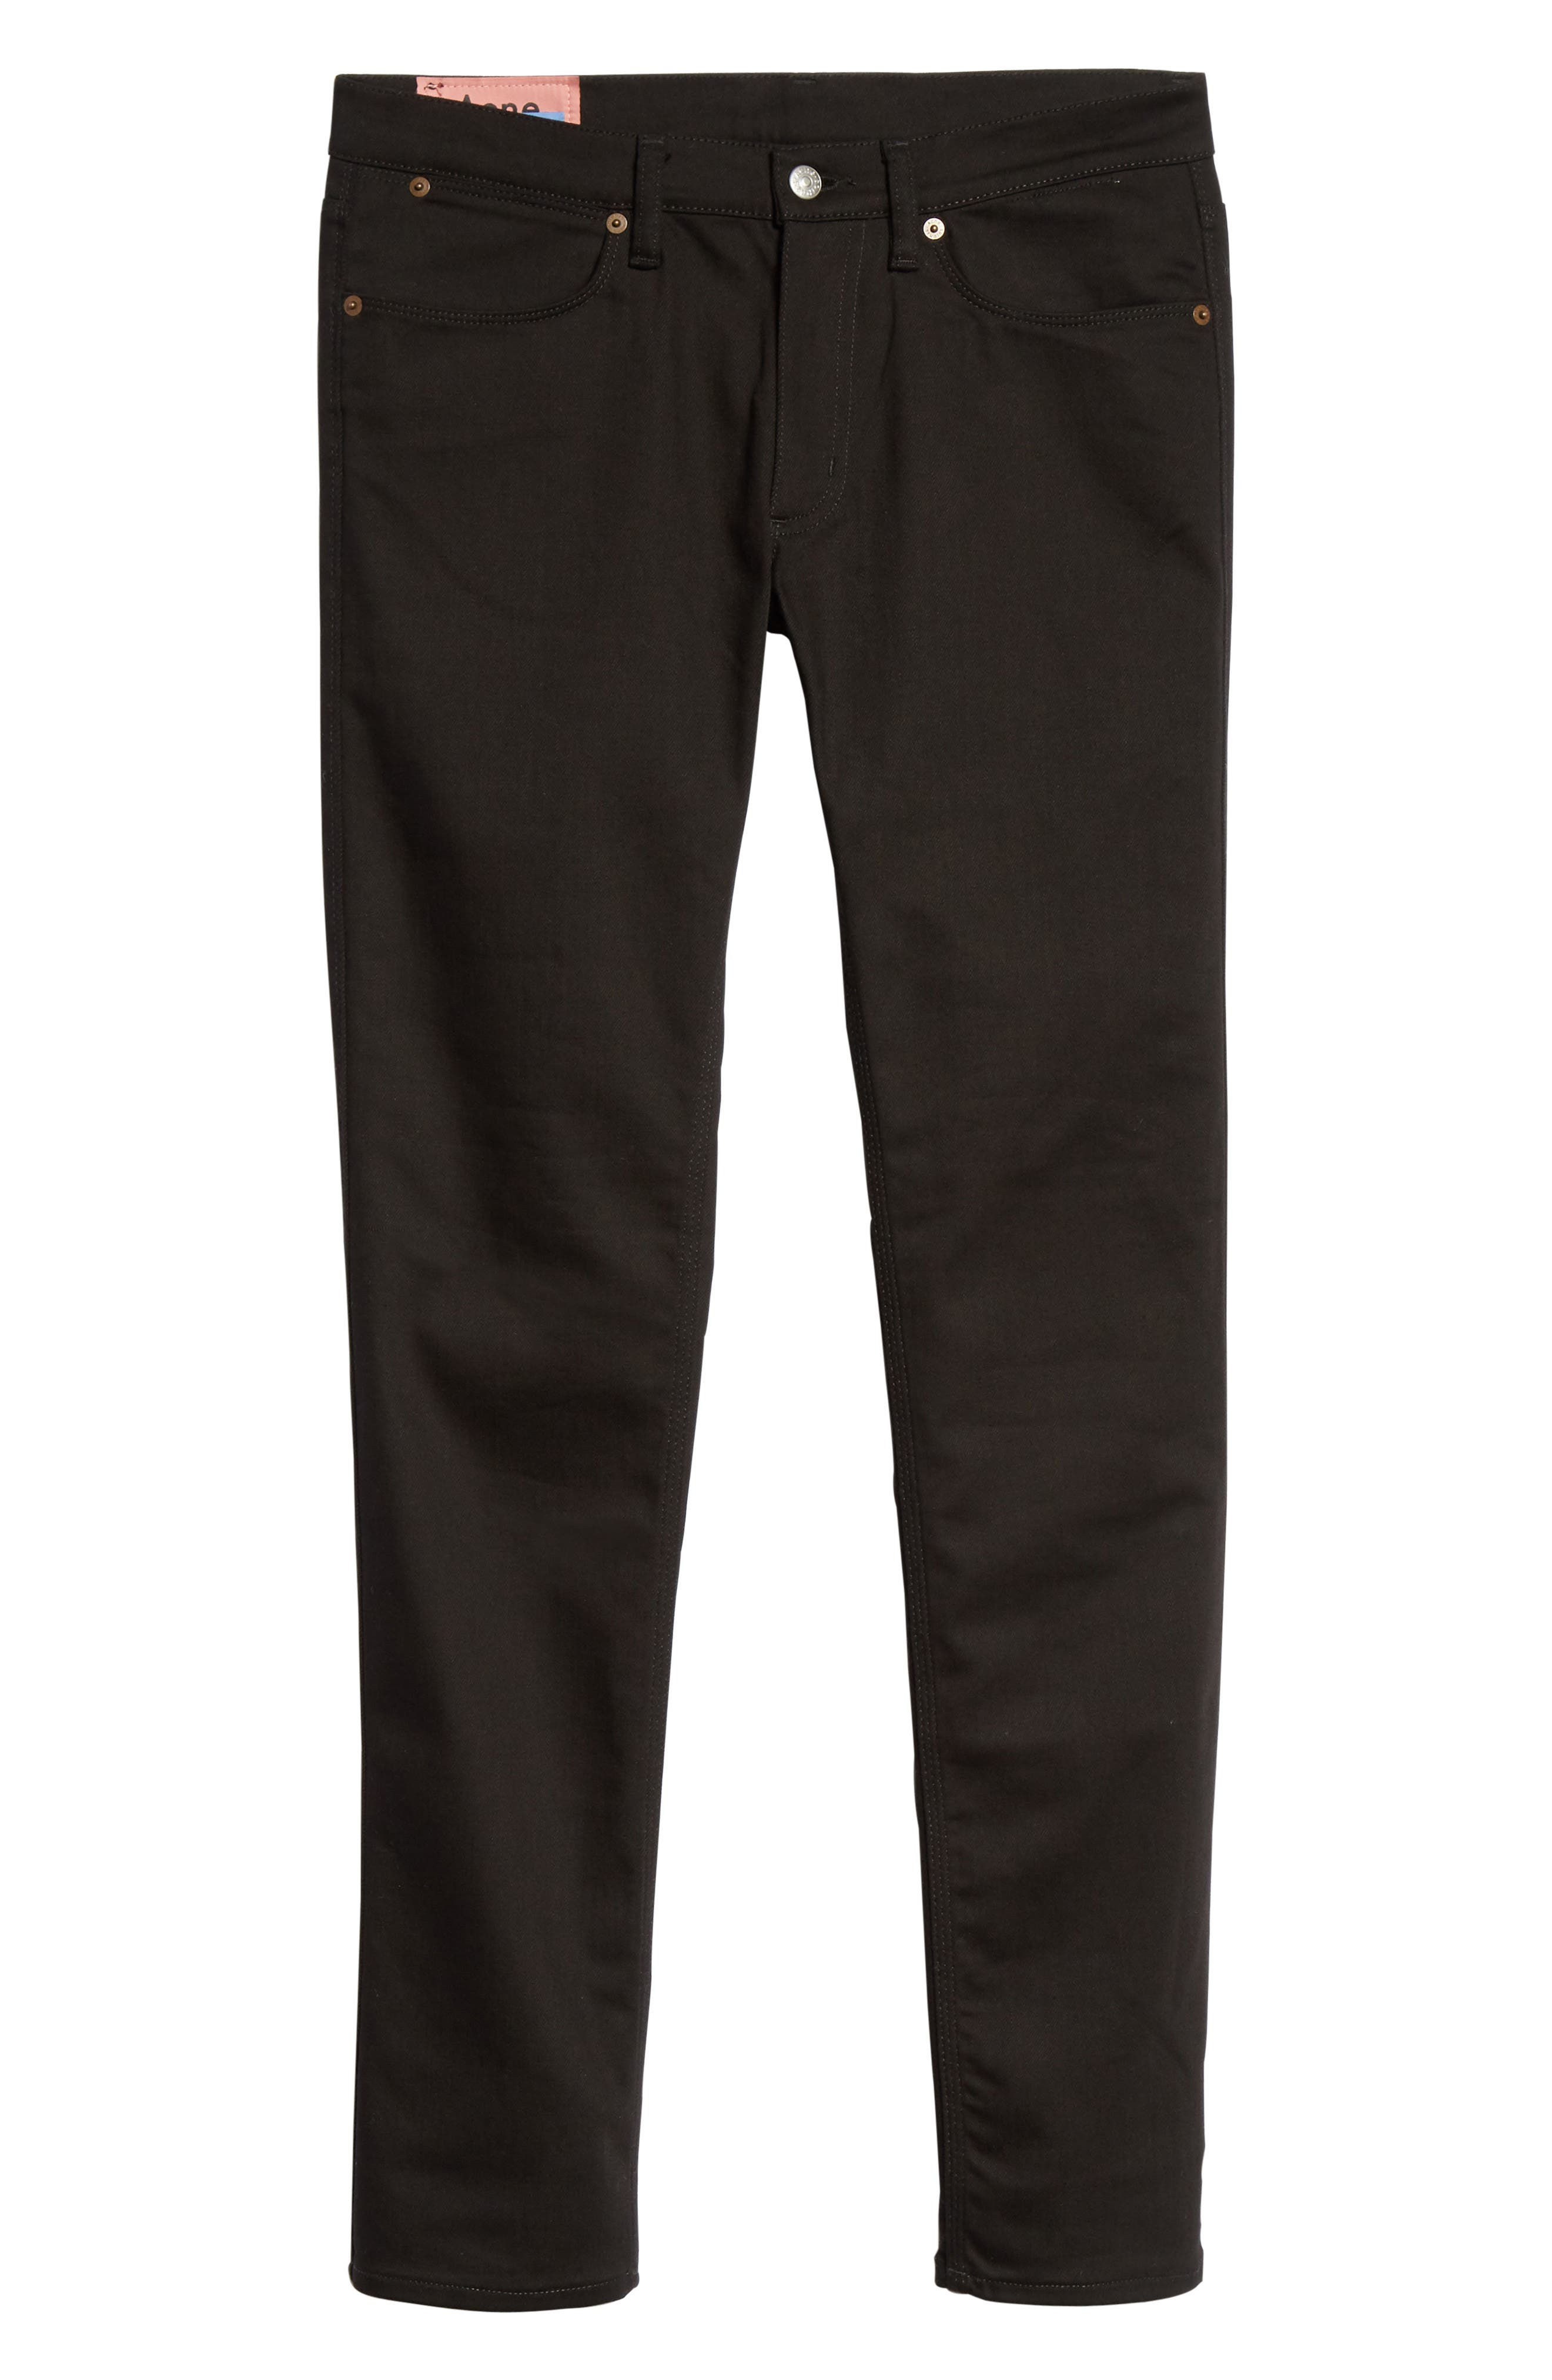 River Used Mamba Skinny Fit Jeans,                             Alternate thumbnail 6, color,                             BLACK